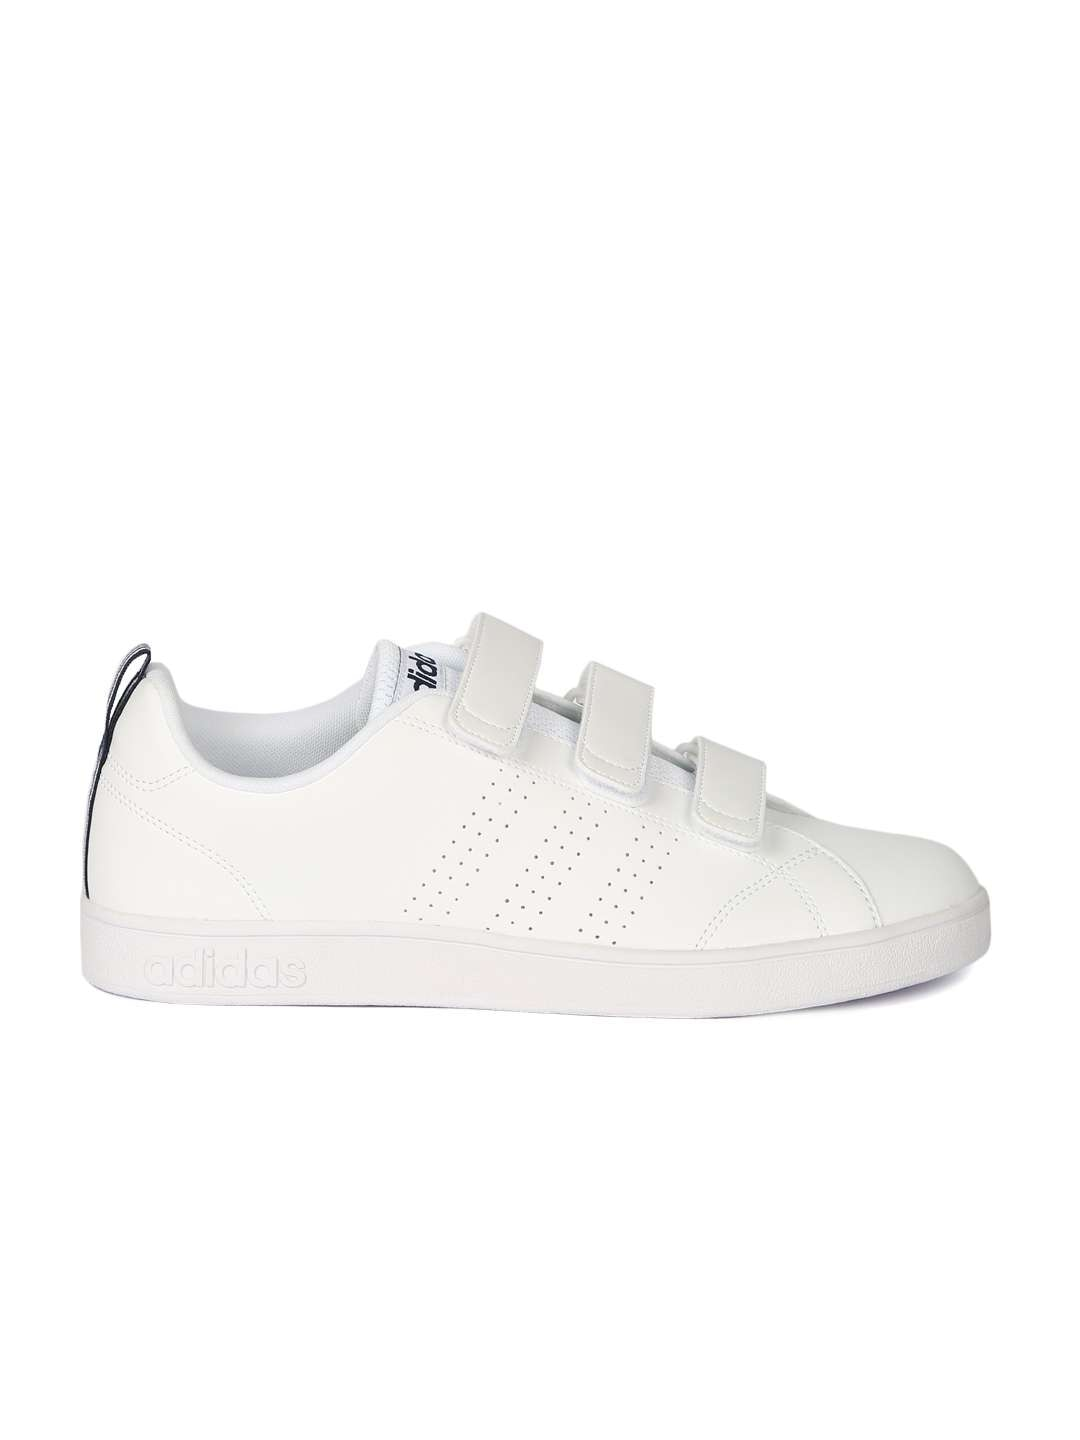 Adidas Neo Vs Advantage Clean Black Sneakers For Men Online In India Cleans White